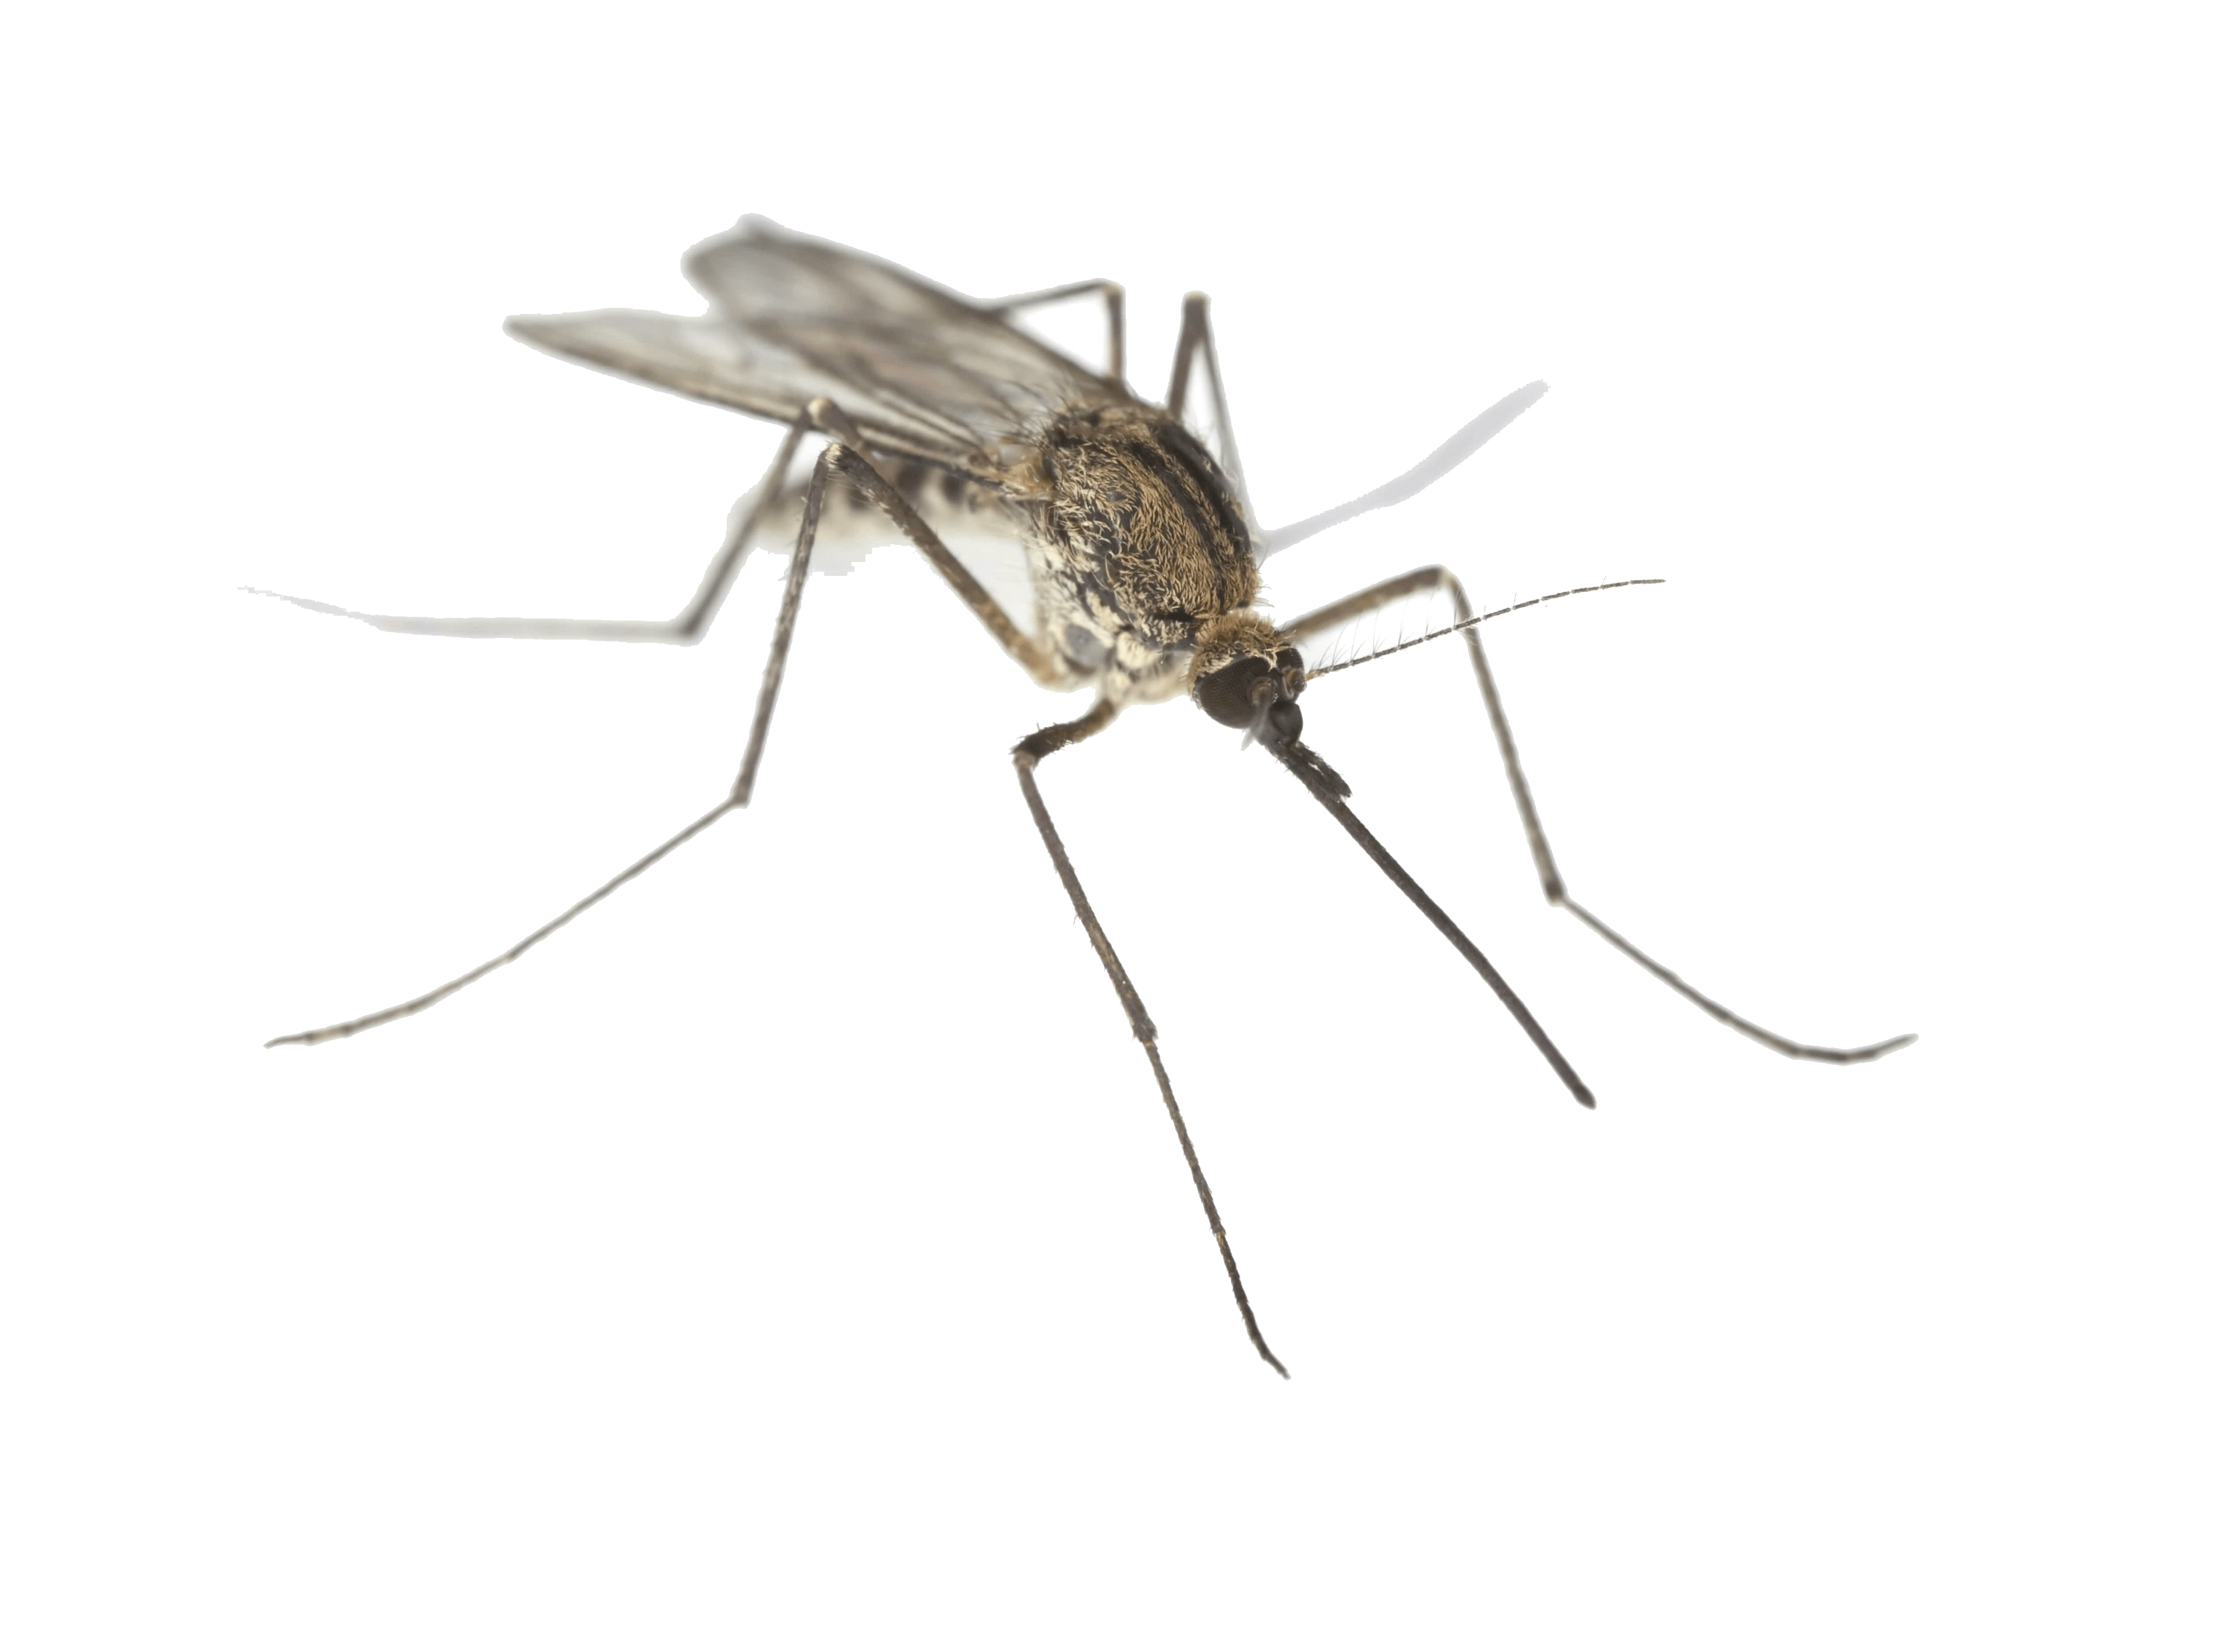 Small fly png. Mosquito images free download